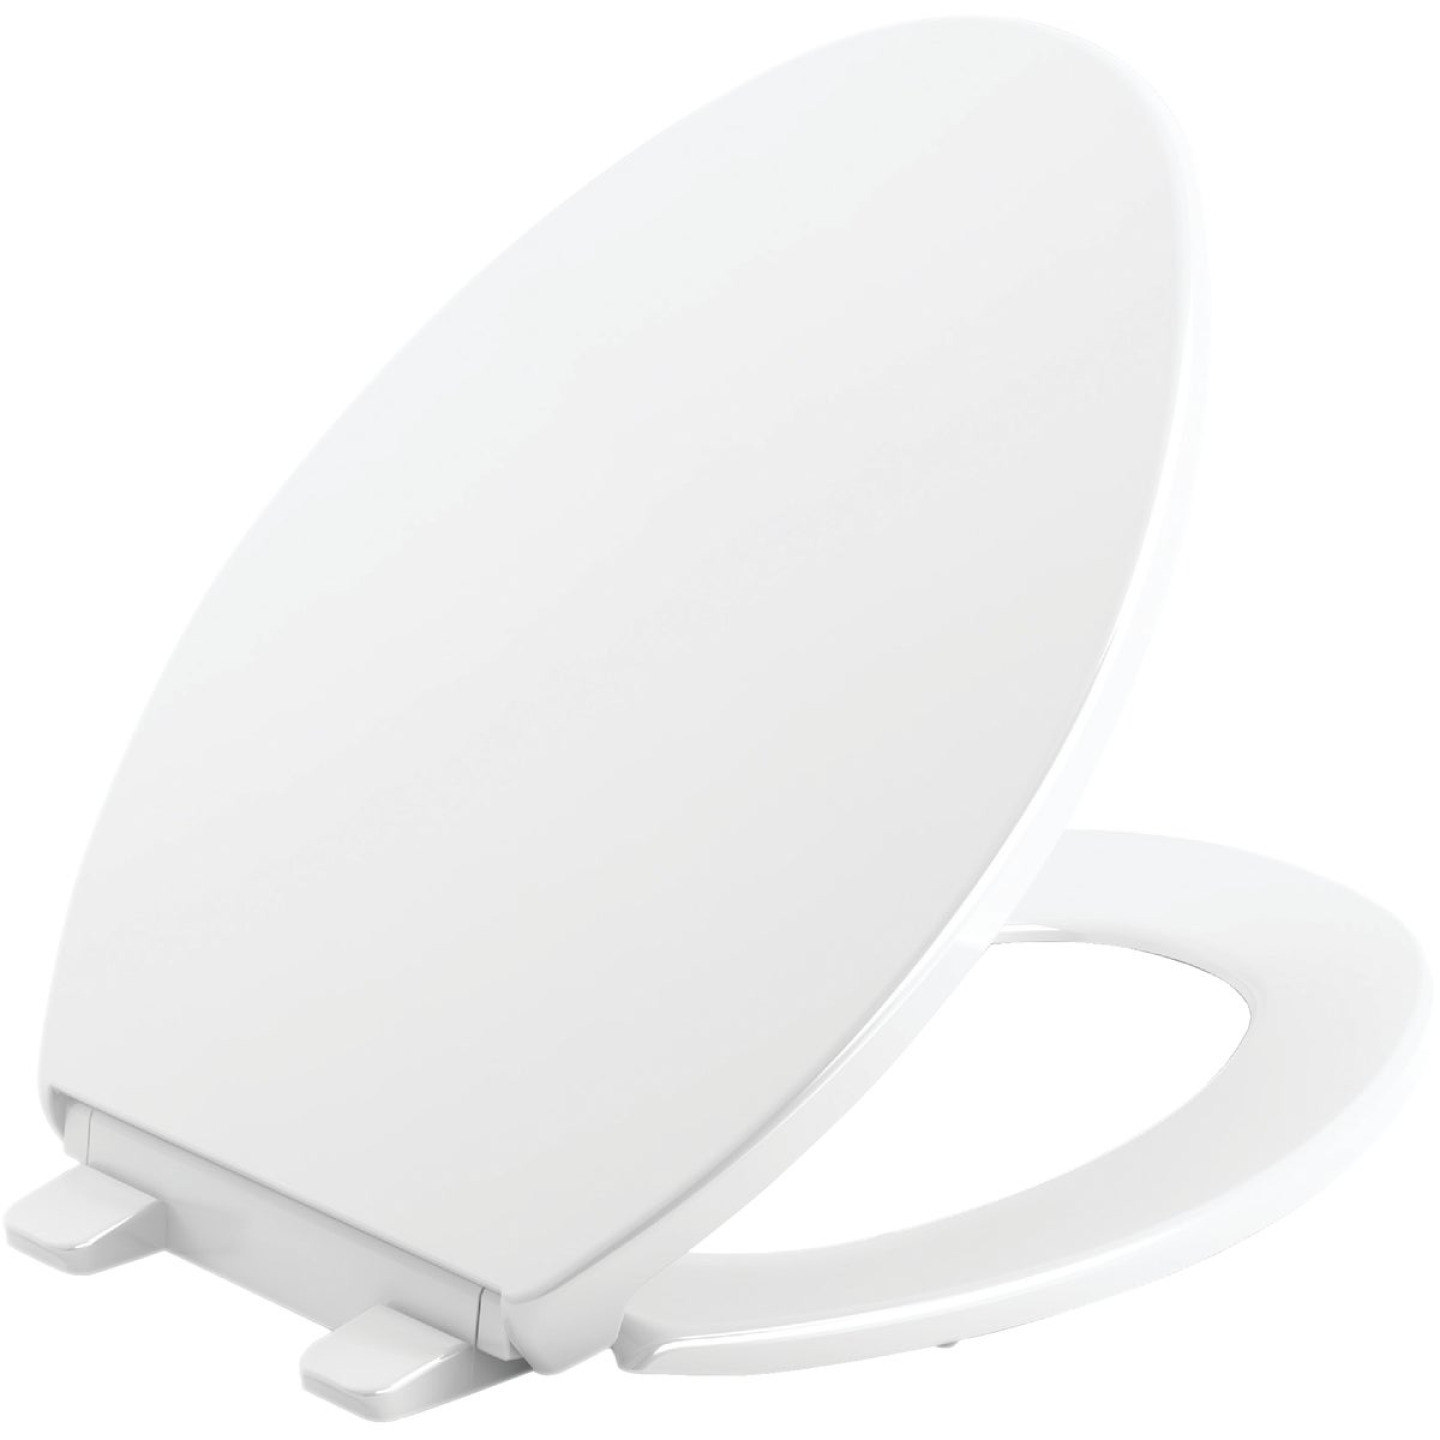 Kohler Brevia Quiet-Close Elongated Closed Front White Toilet Seat with Grip-Tight Bumpers Image 1